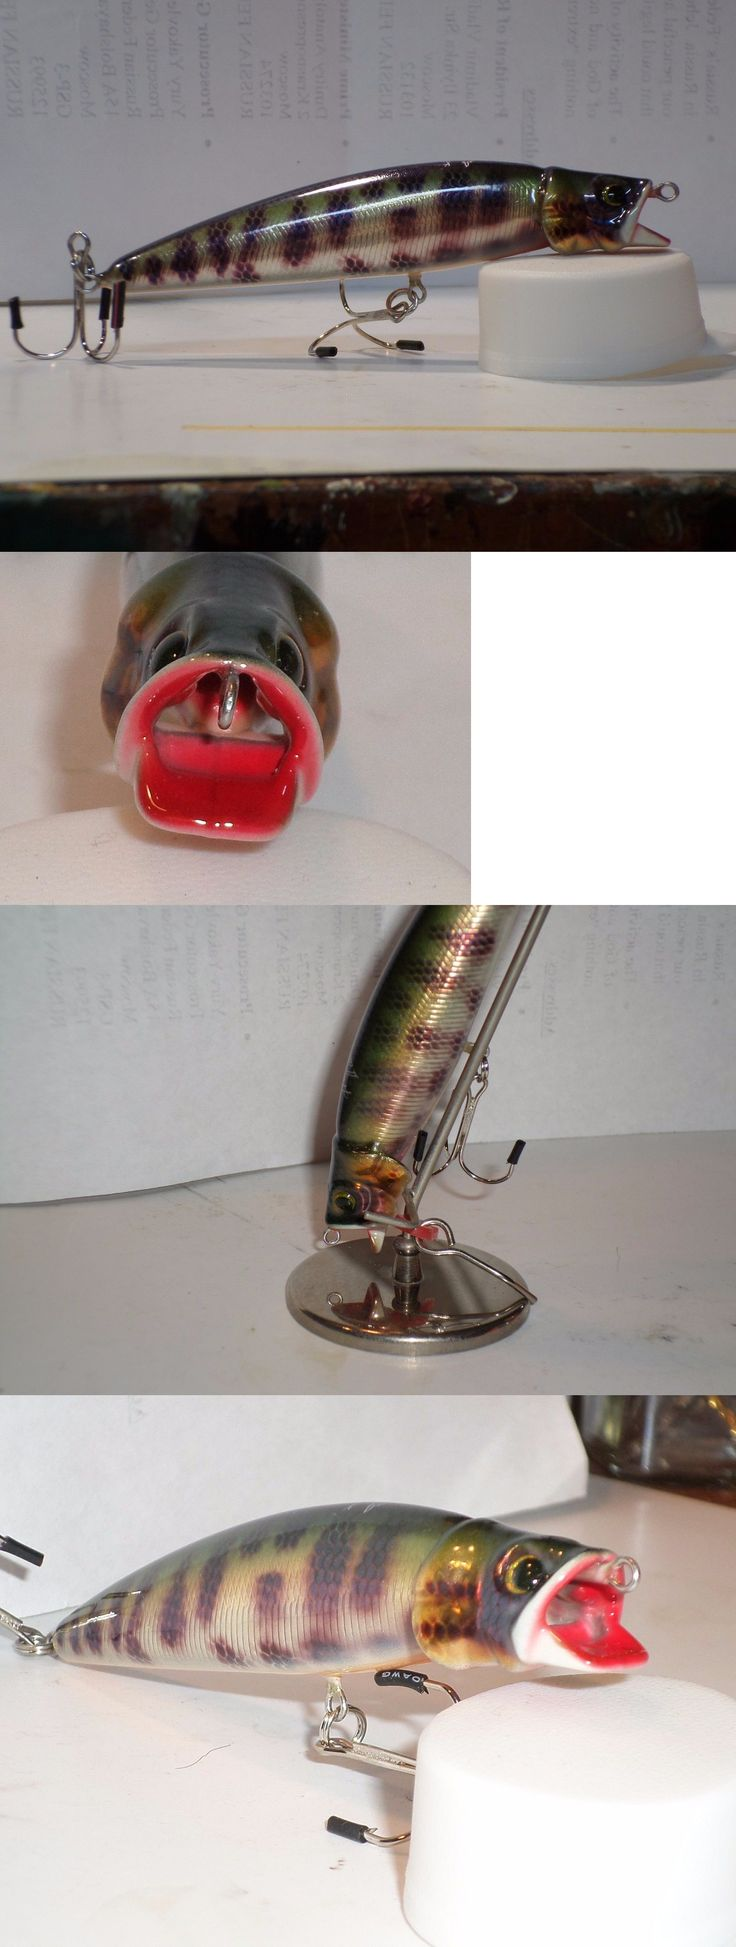 Other Baits Lures and Flies 31693: Hmng Bubble Popper Ii Duct ( #14 New 9Yrs Old Never Used Beautiful Lure 4 Inchs -> BUY IT NOW ONLY: $50 on eBay!